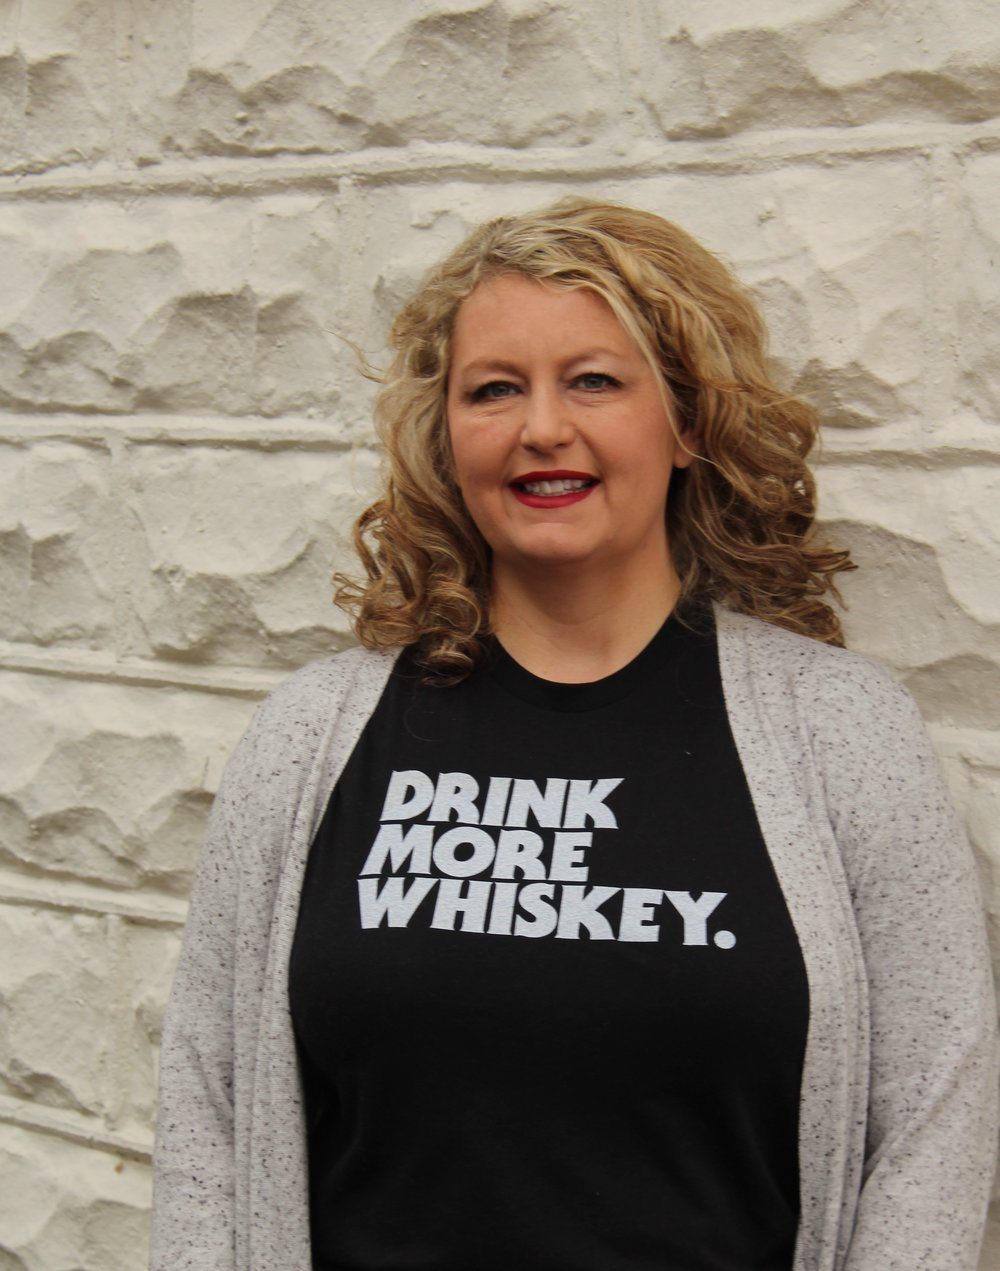 Drink More Whiskey Tee available at The Bitter Southerner General Store.